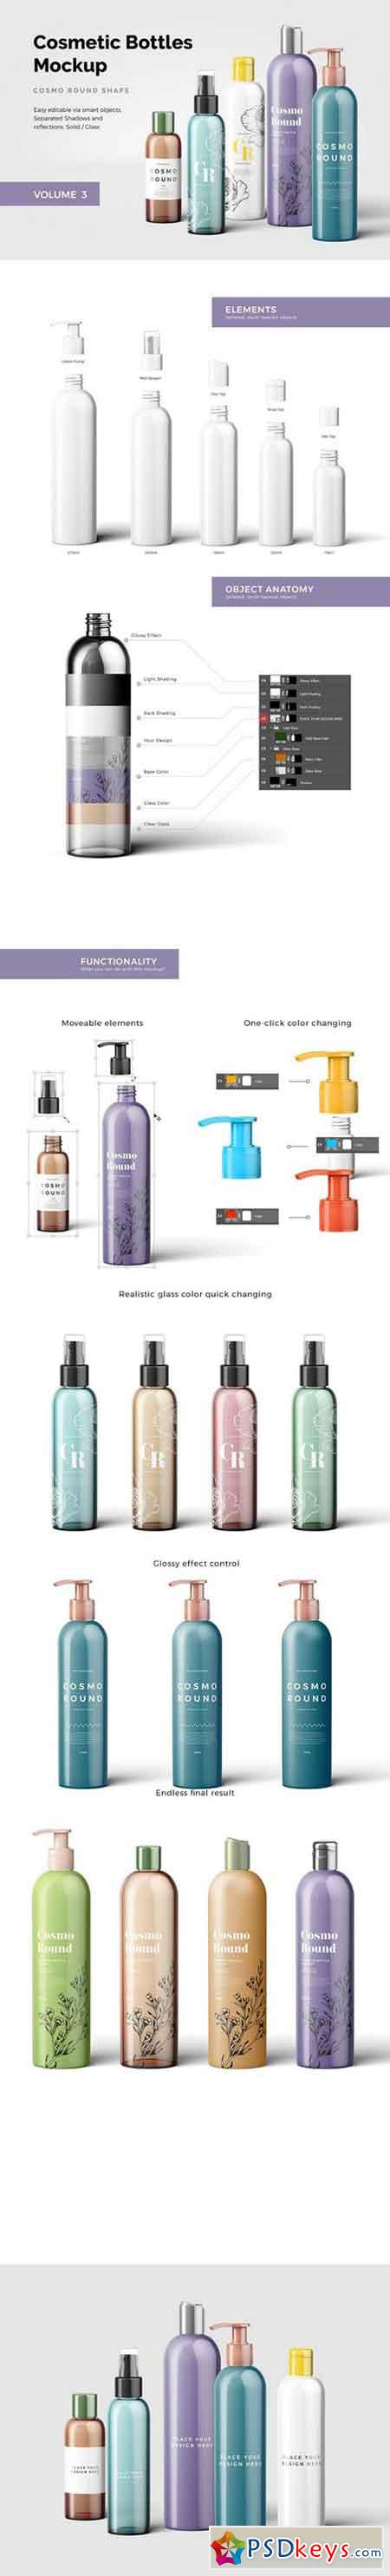 Cosmetic Bottles Mockup Vol.3 1999669